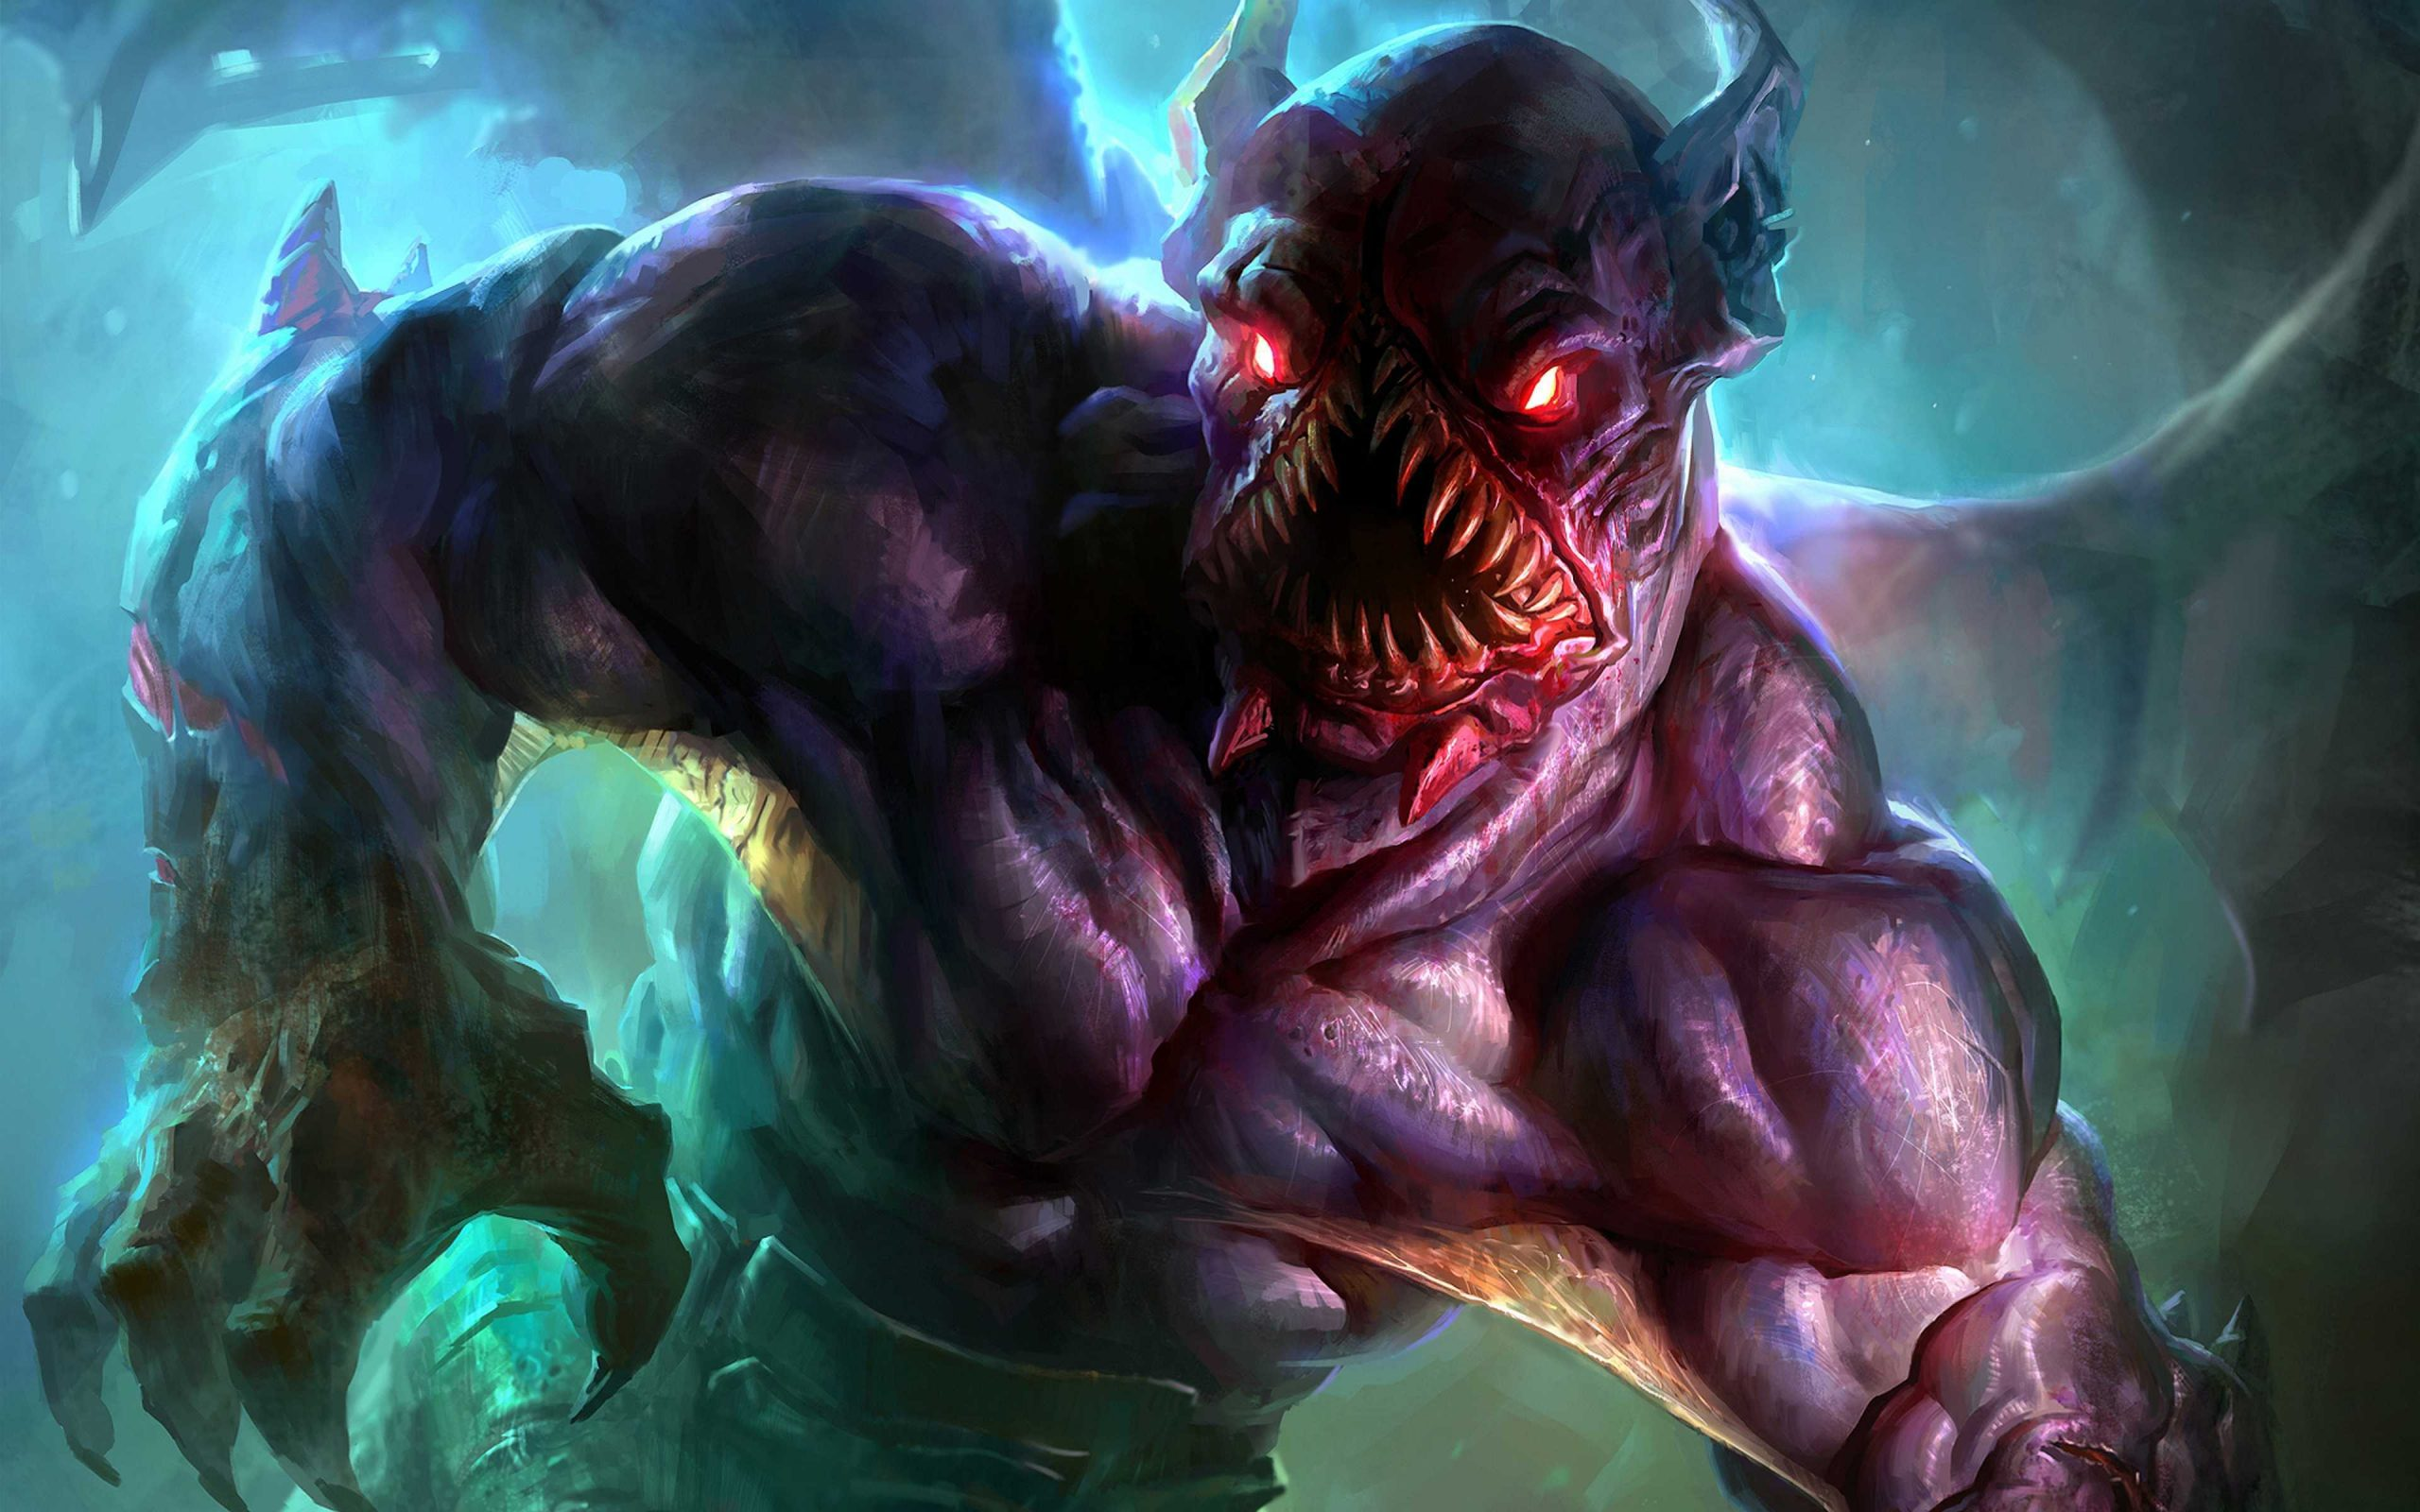 Dota 2 4k For Pc In Hd Defense Of The Ancients Dota 2 Wallpaper Wallpaper